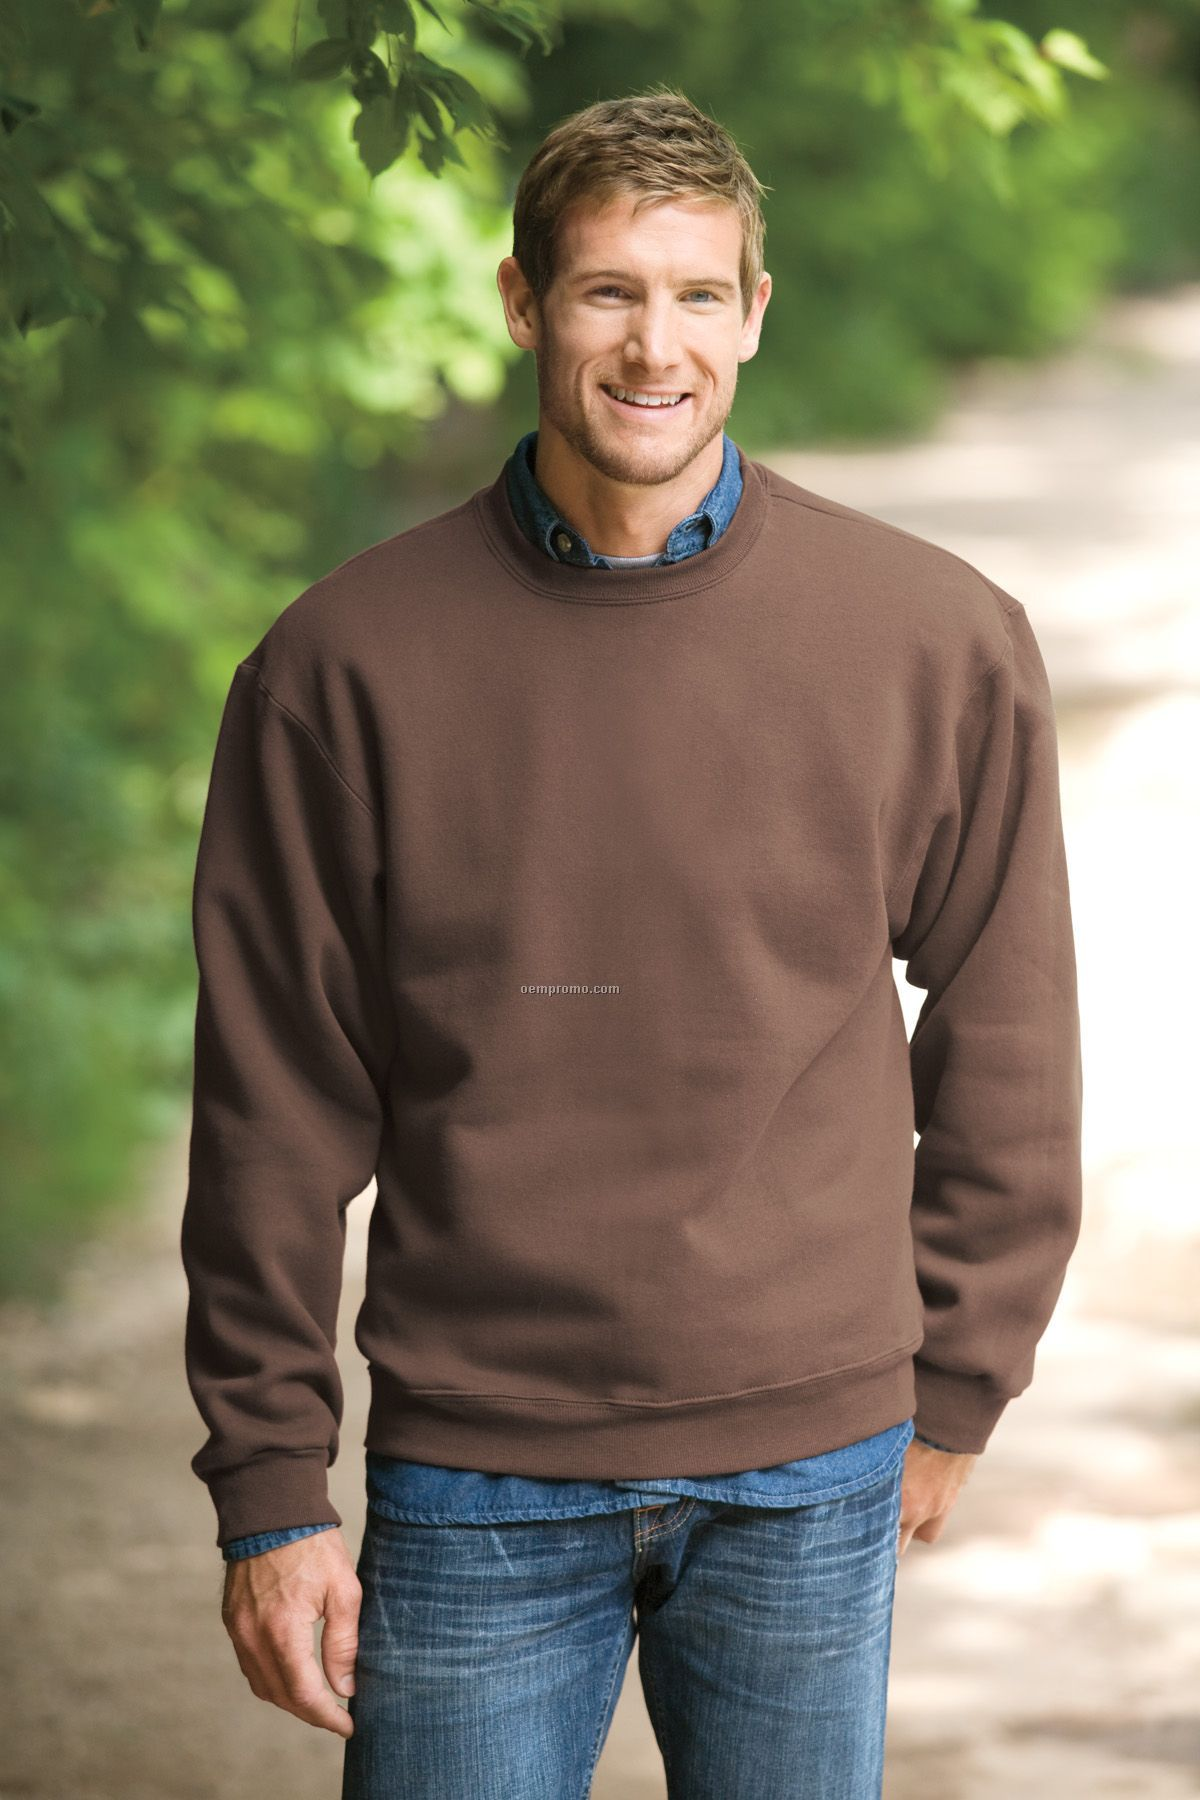 Fruit Of The Loom Supercotton Crewneck Sweatshirt - Colors